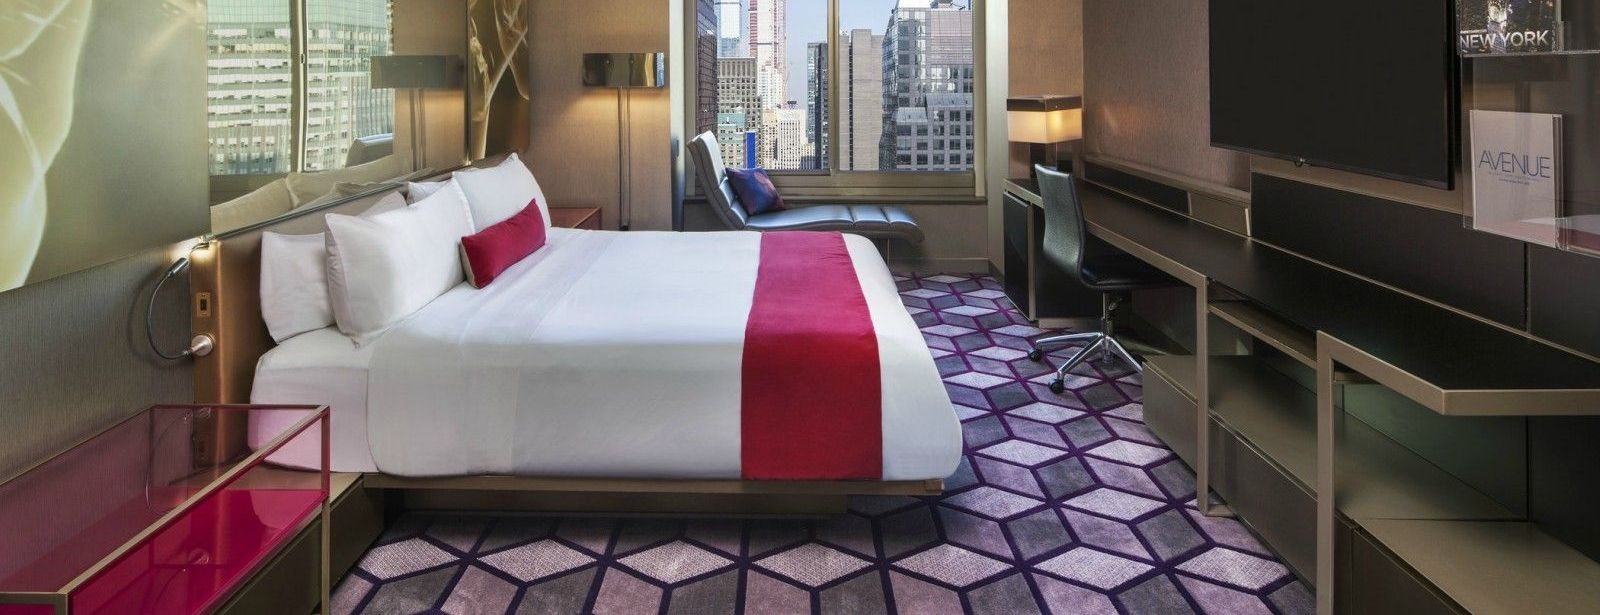 Times Square Accommodations | Spectacular King Room